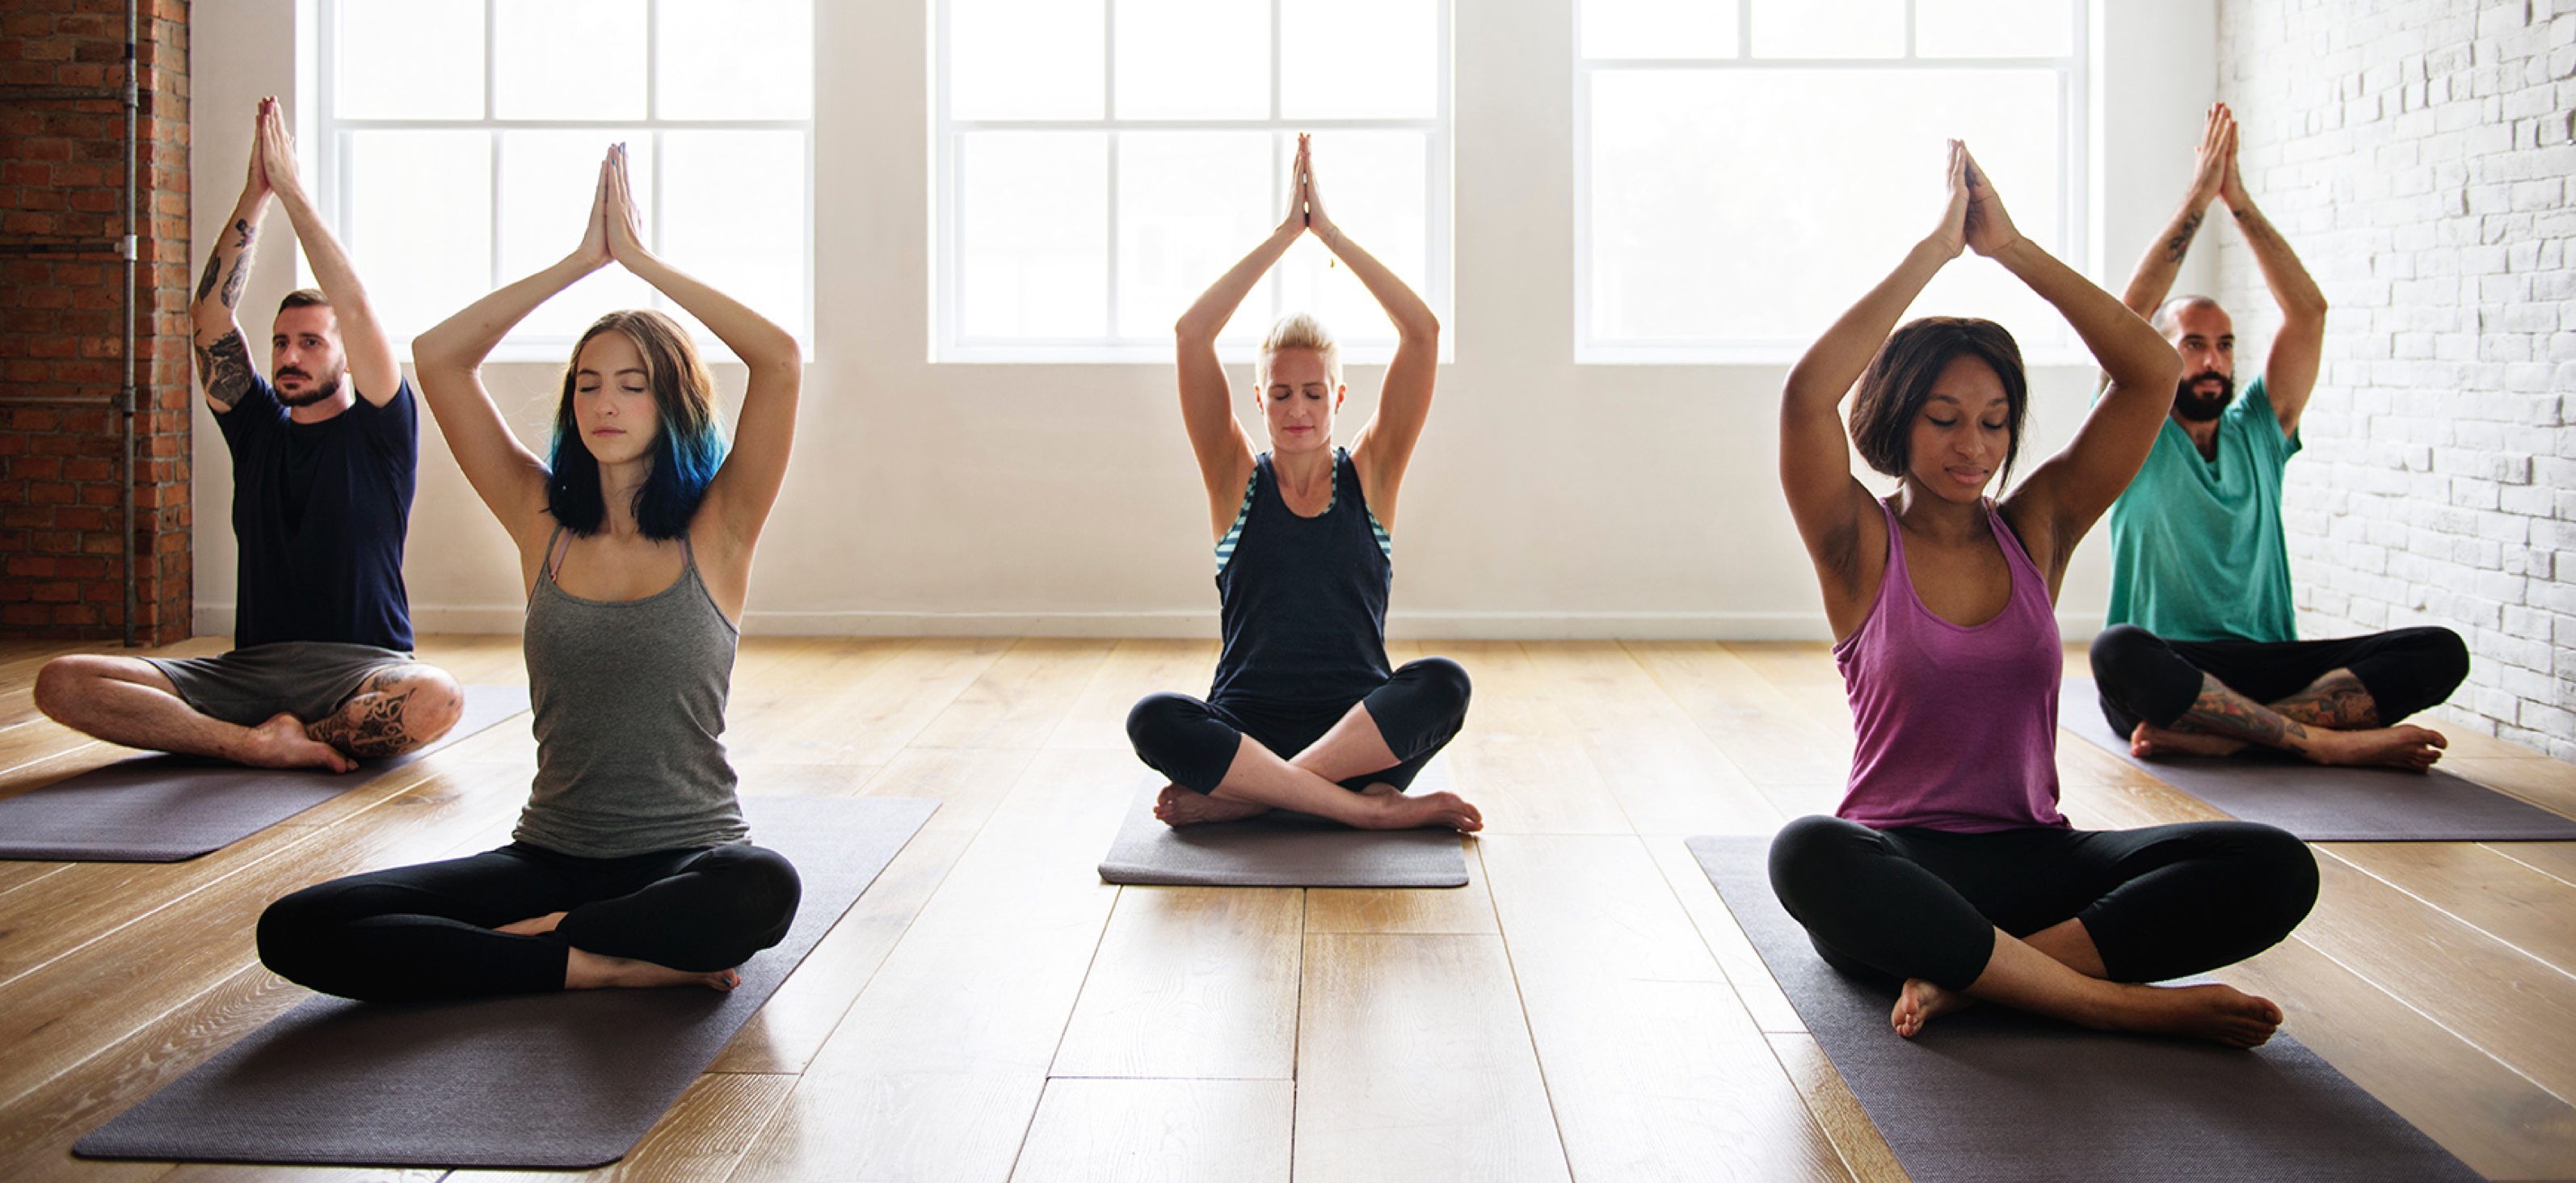 Blog - The Power of Morning Yoga: Health Benefits of Yoga Practice - The GreenLine Market